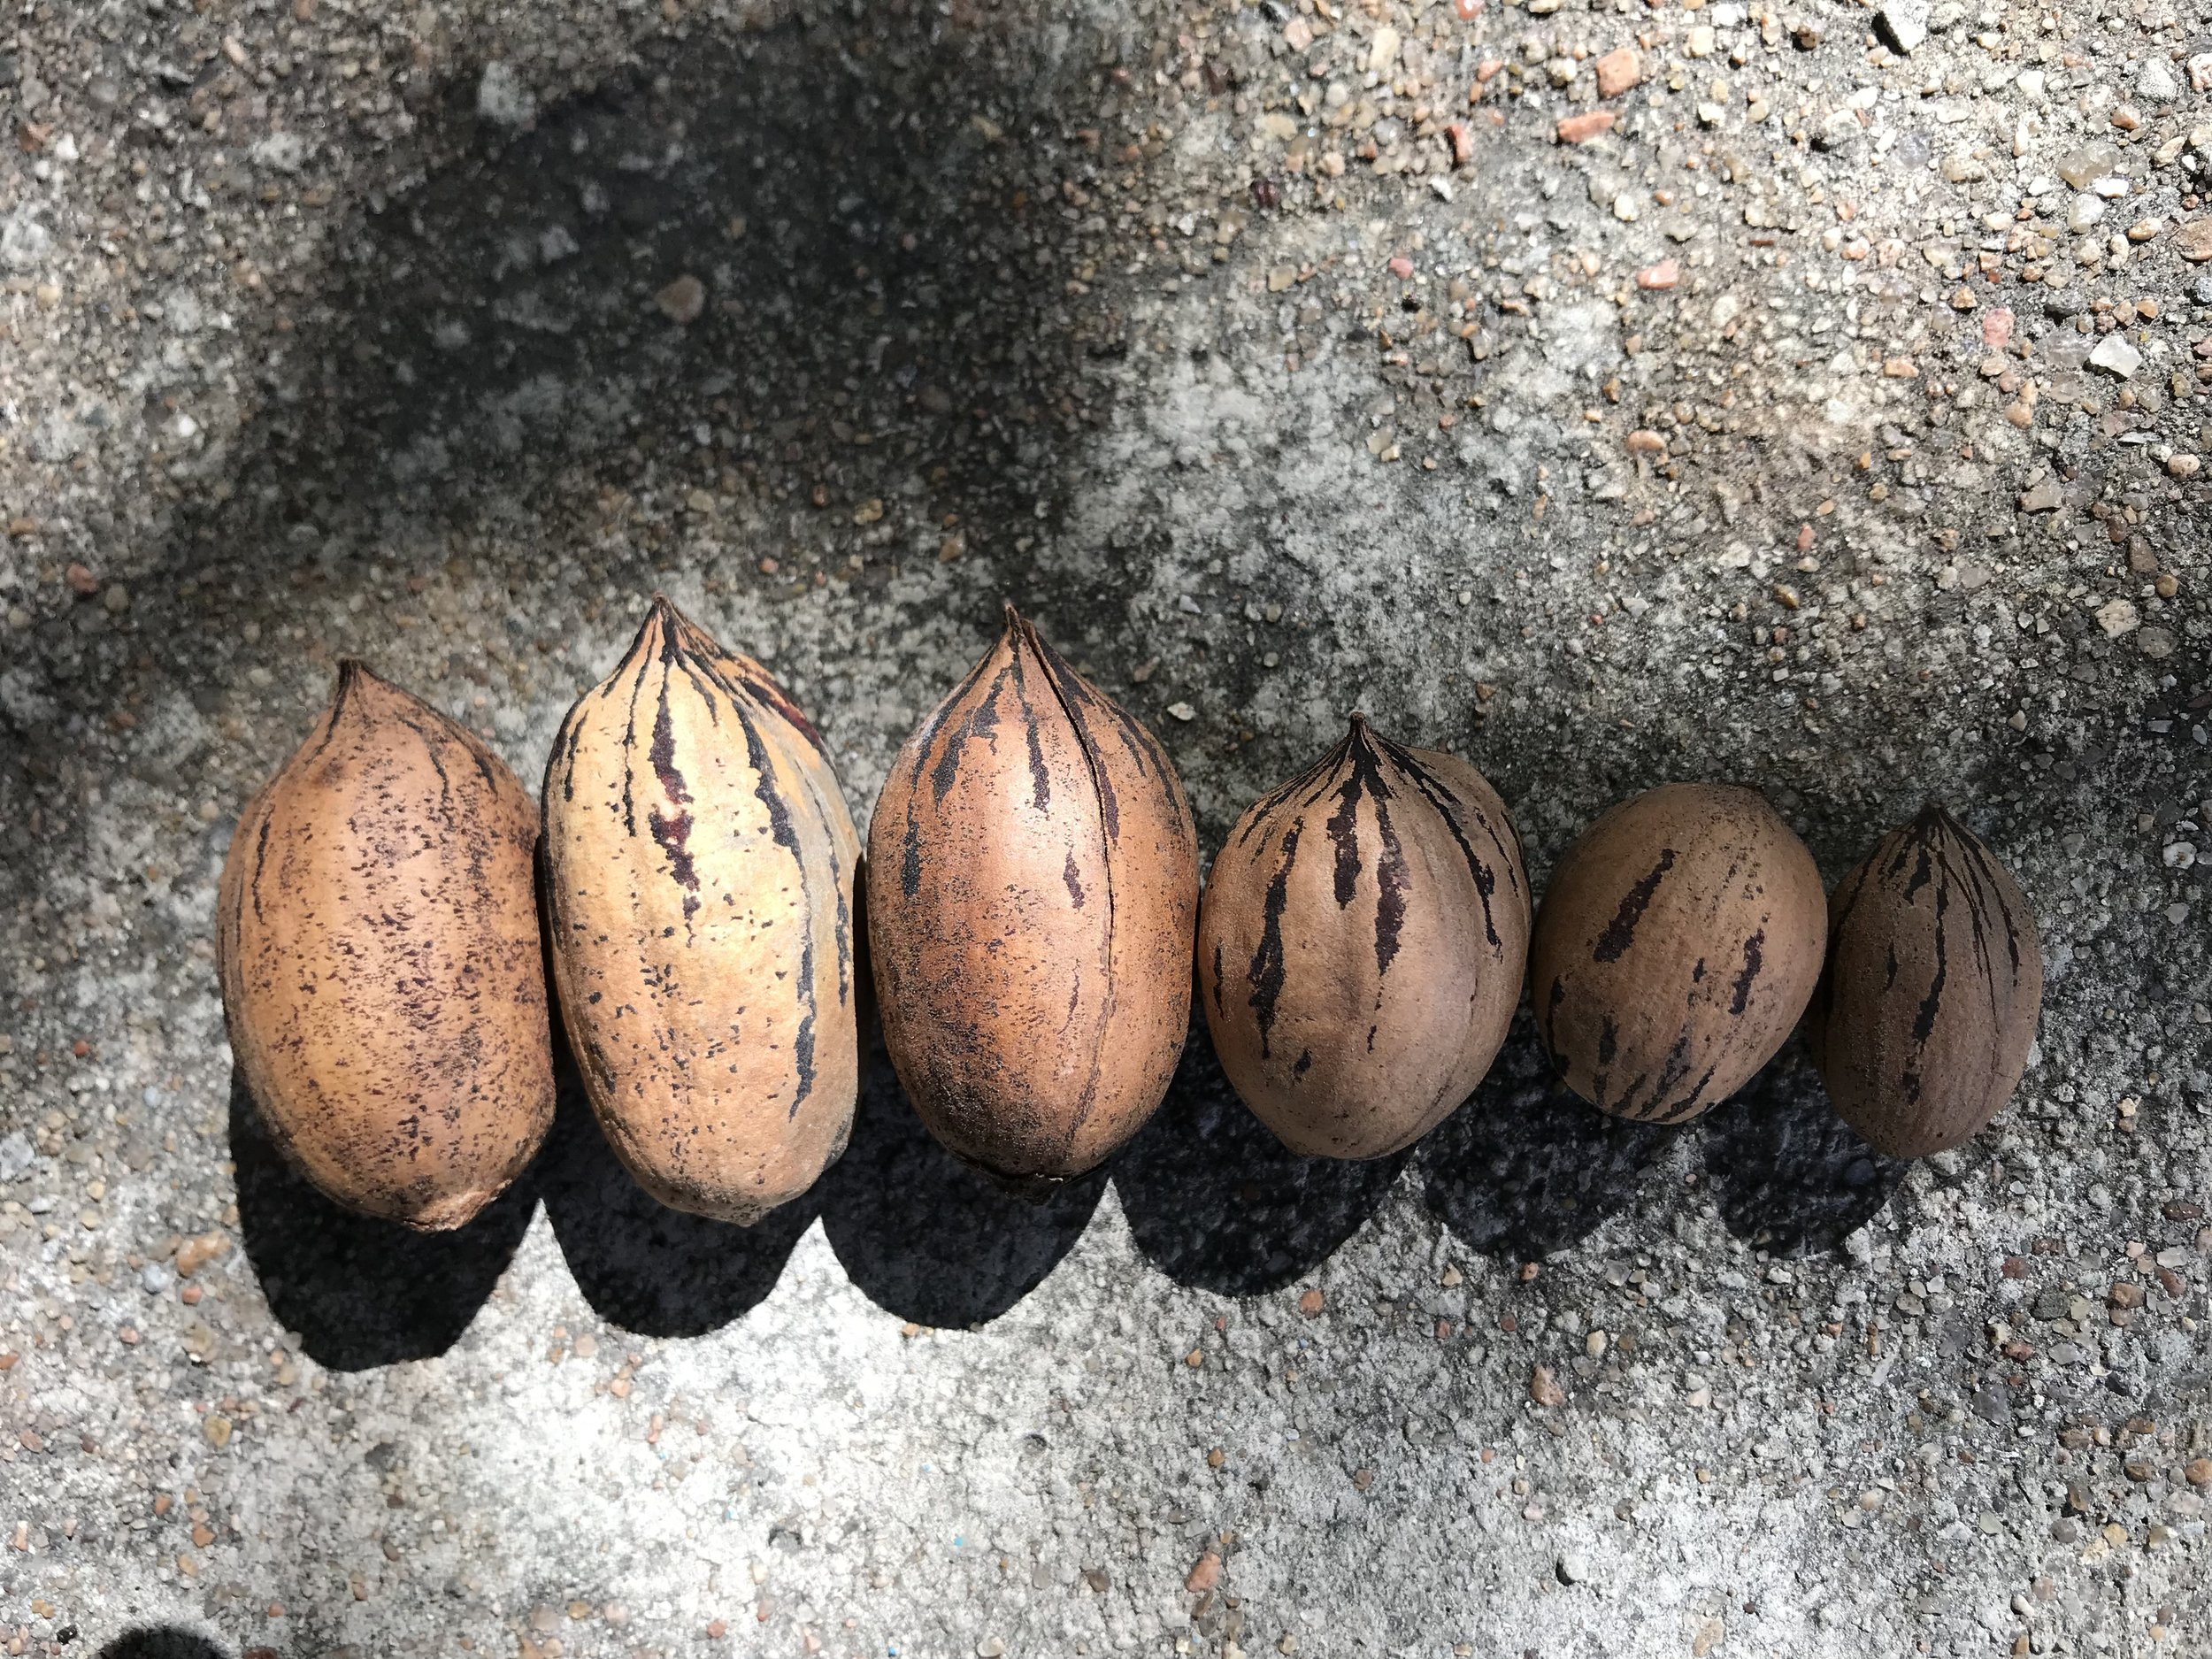 Size variation among the pecans we picked. The bigger ones were easier to pick, but clearly less tasty. Do you prefer tastier foods? Or more calories?